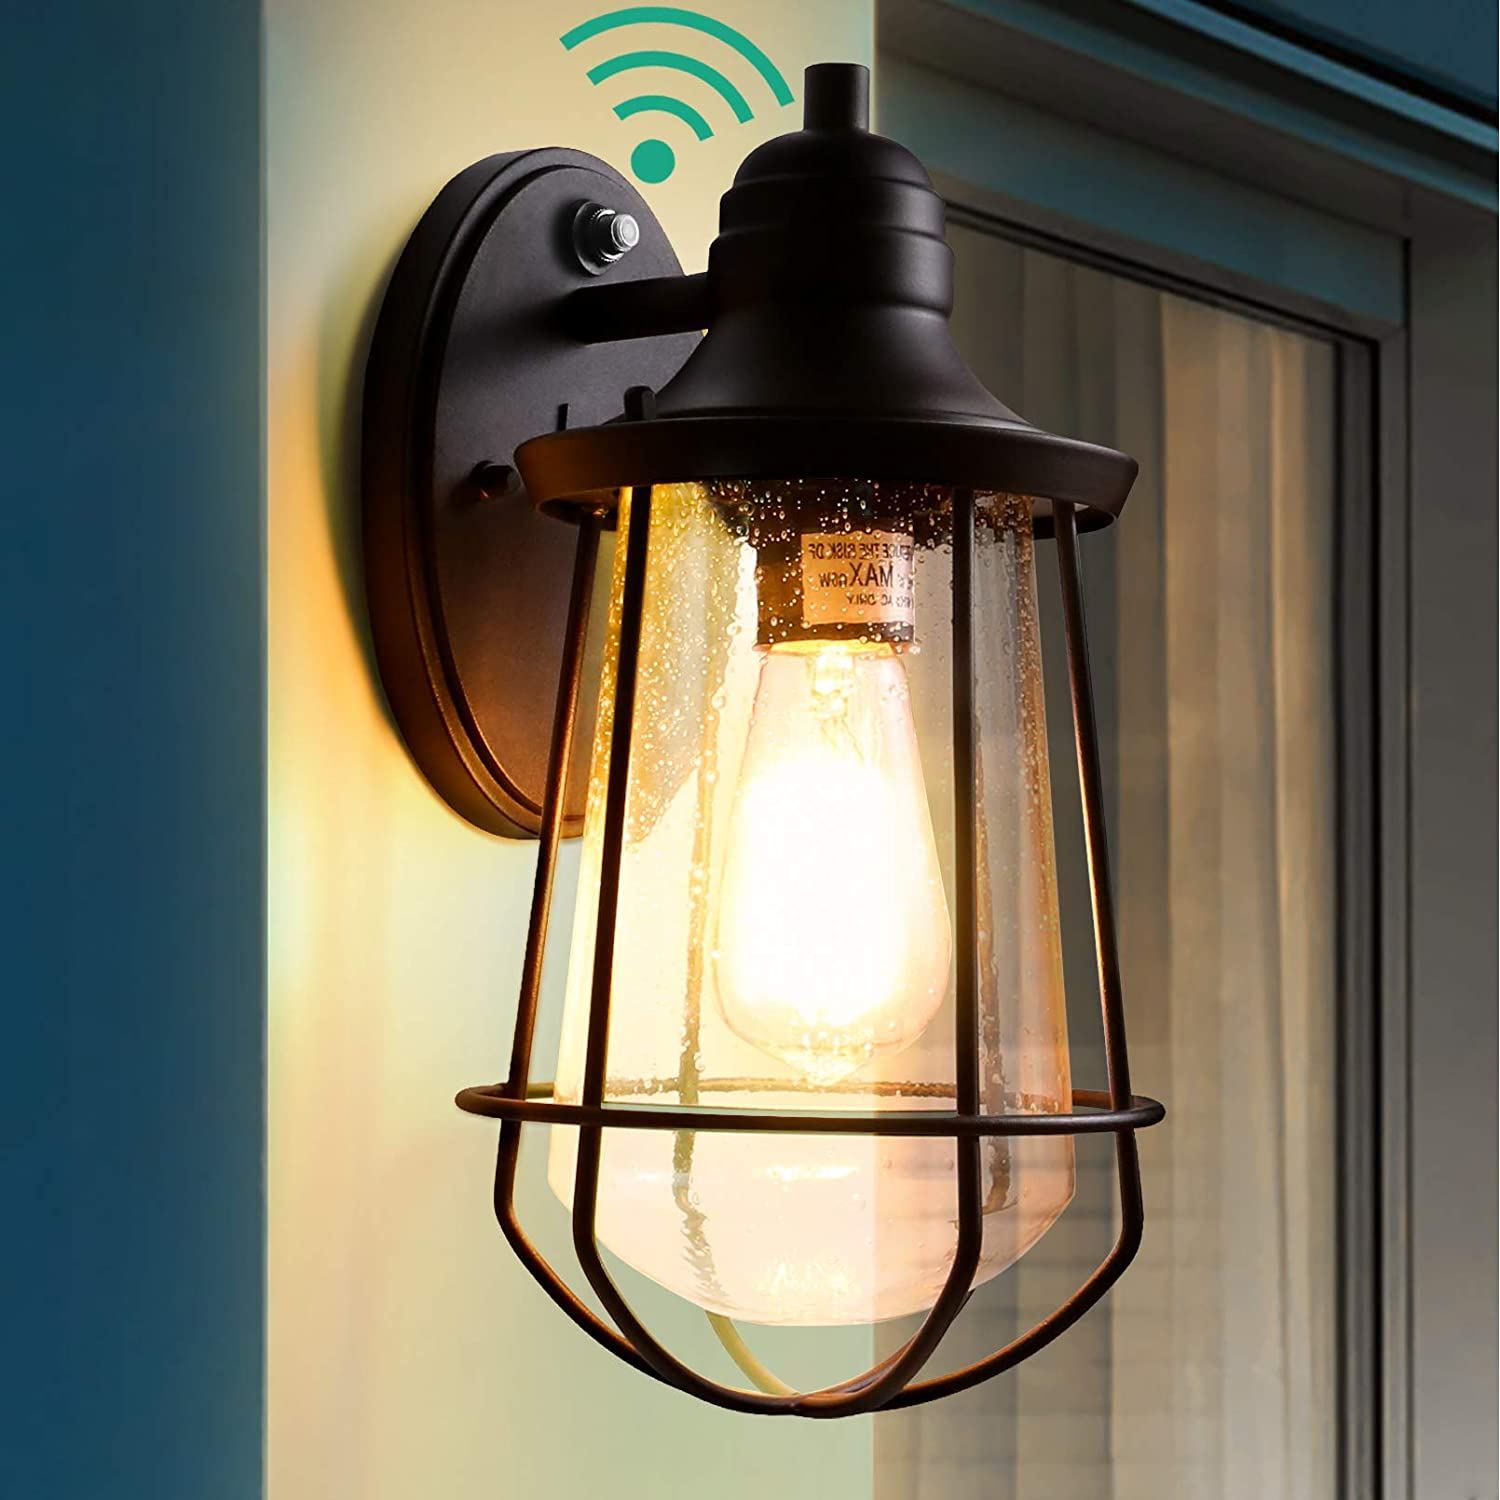 Outdoor Light Fixtures Wall Mount with Dusk to Dawn Photocell,Black Led Exterior Front Door Porch Light Scone with Seeded Glass, Modern Garage Light for Entry Doorway with Light Bulb ETL Listed